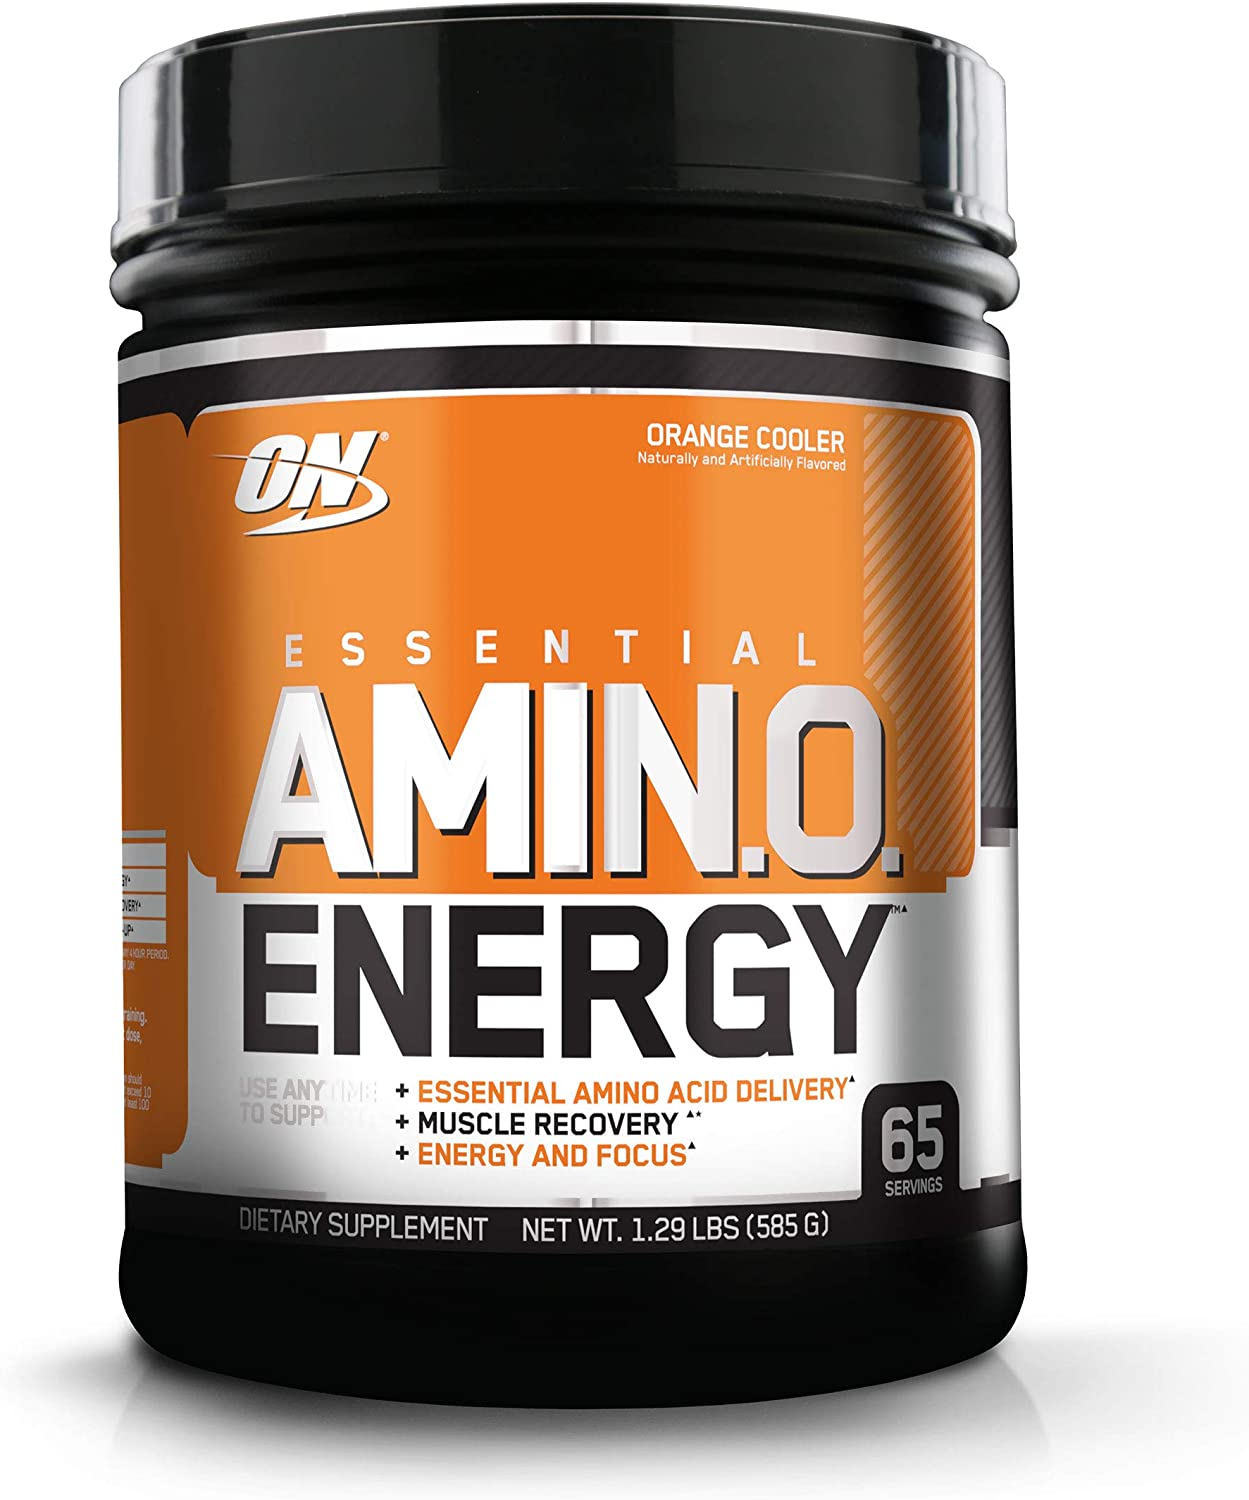 Optimum Nutrition Amino Energy - Pre Workout with Green Tea, BCAA, Amino Acids, Keto Friendly, Green Coffee Extract, Energy Powder - Orange Cooler, 65 Servings: Health & Personal Care